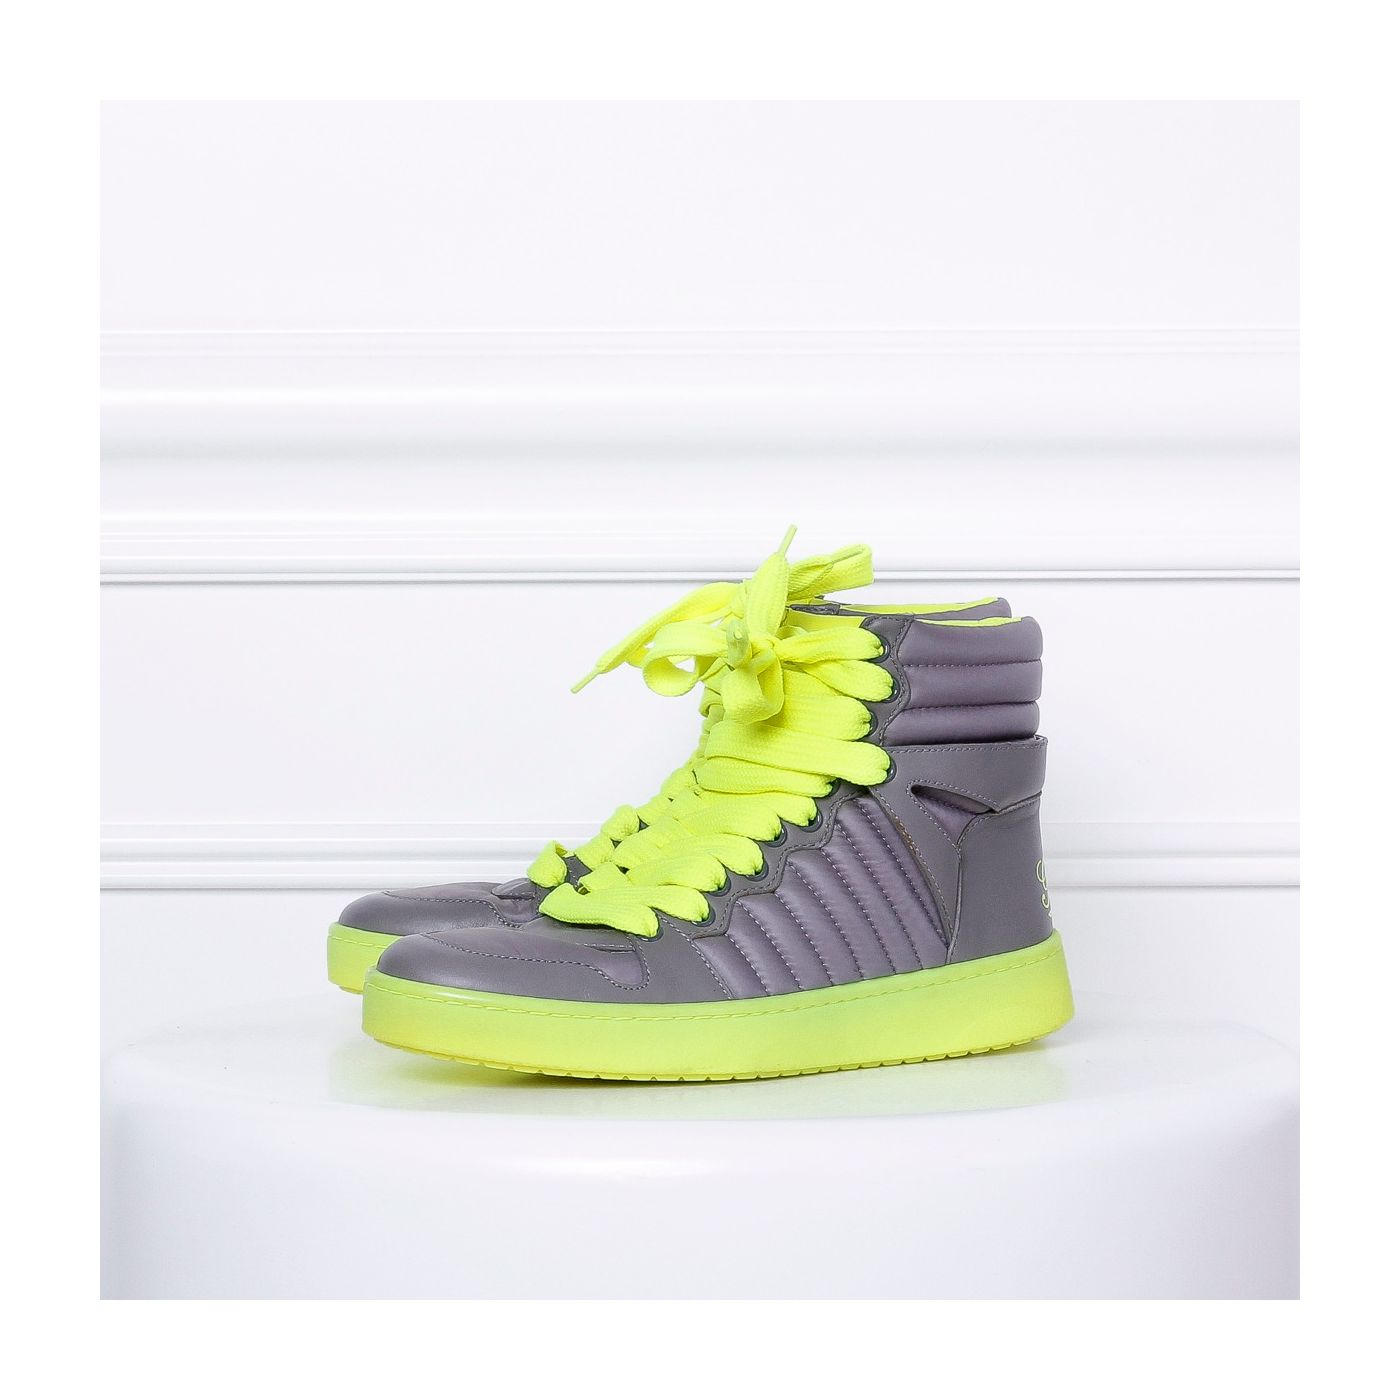 Gucci High Neon Green sneakers 37